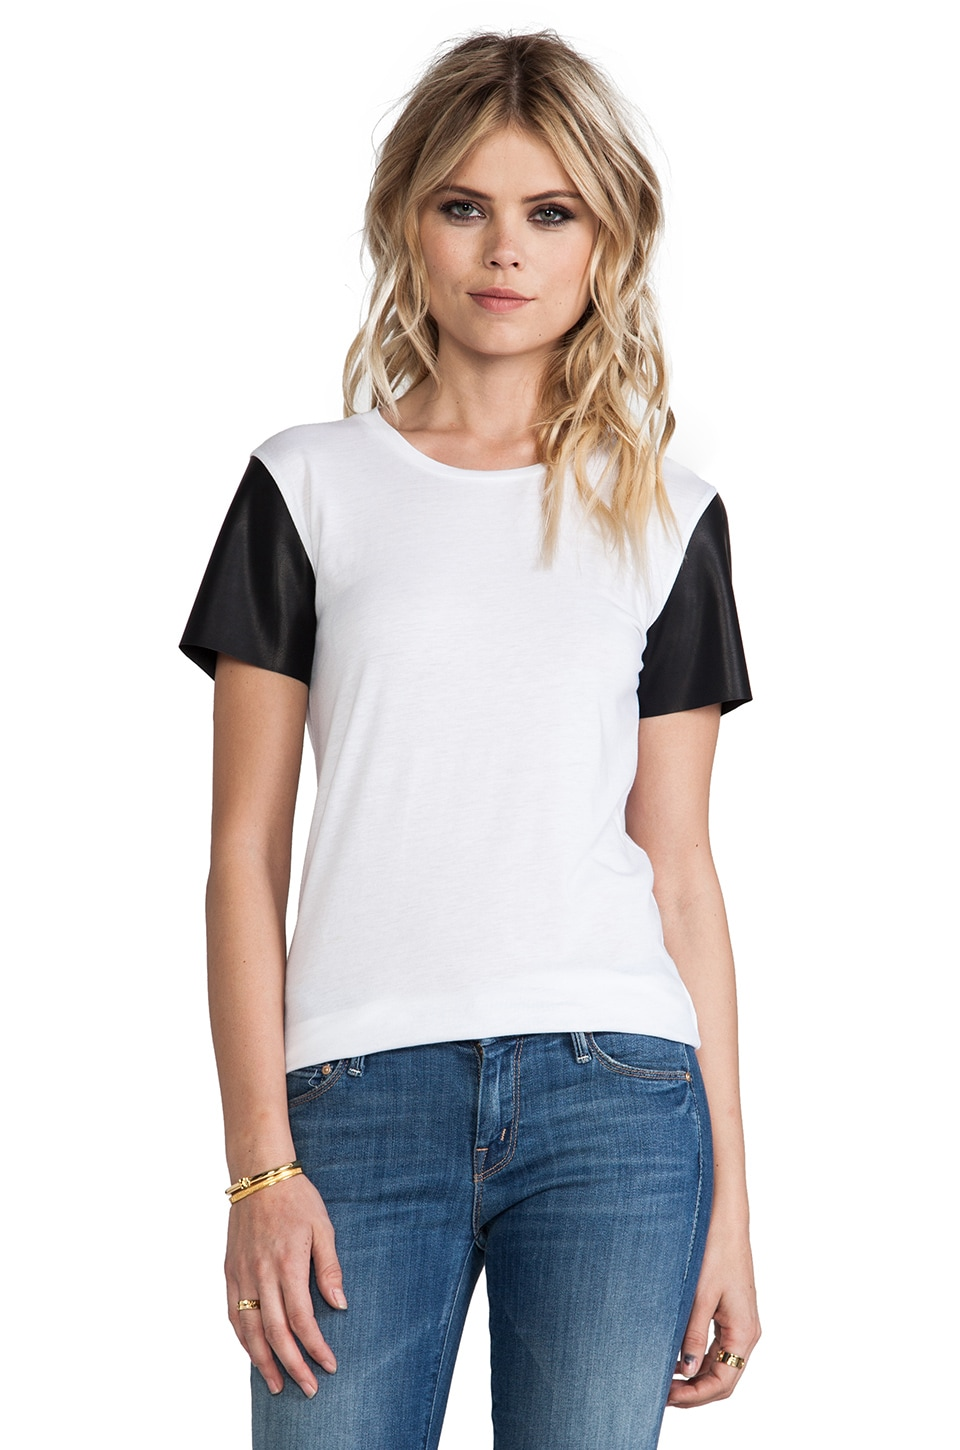 Bobi Jersey Short Sleeve Tee with Leather in White